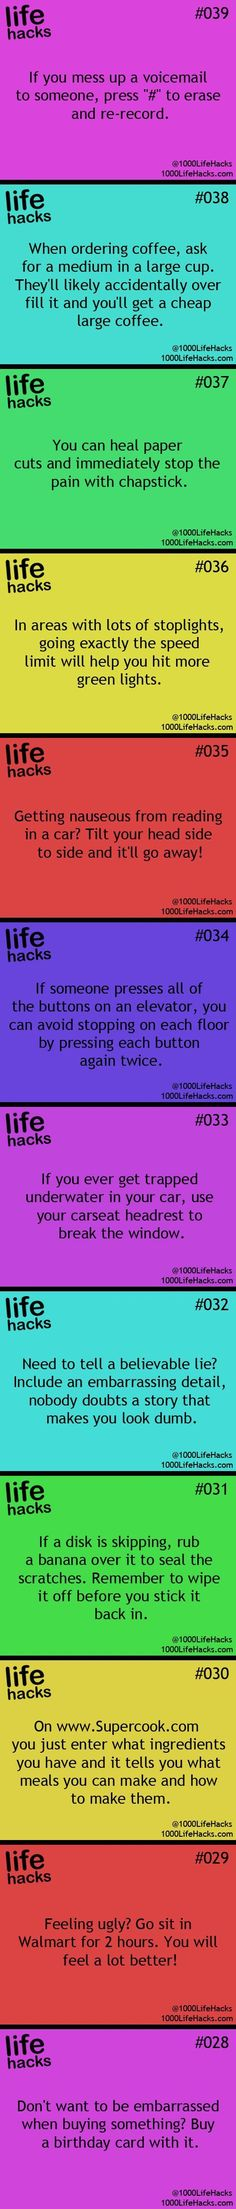 I love life hacks! So many great ideas!! 4748 874 6 Jordyn Jude Just for fun Faith Trumble #35 would be great.... 'cept it doesn't work if you have motion sickness :(